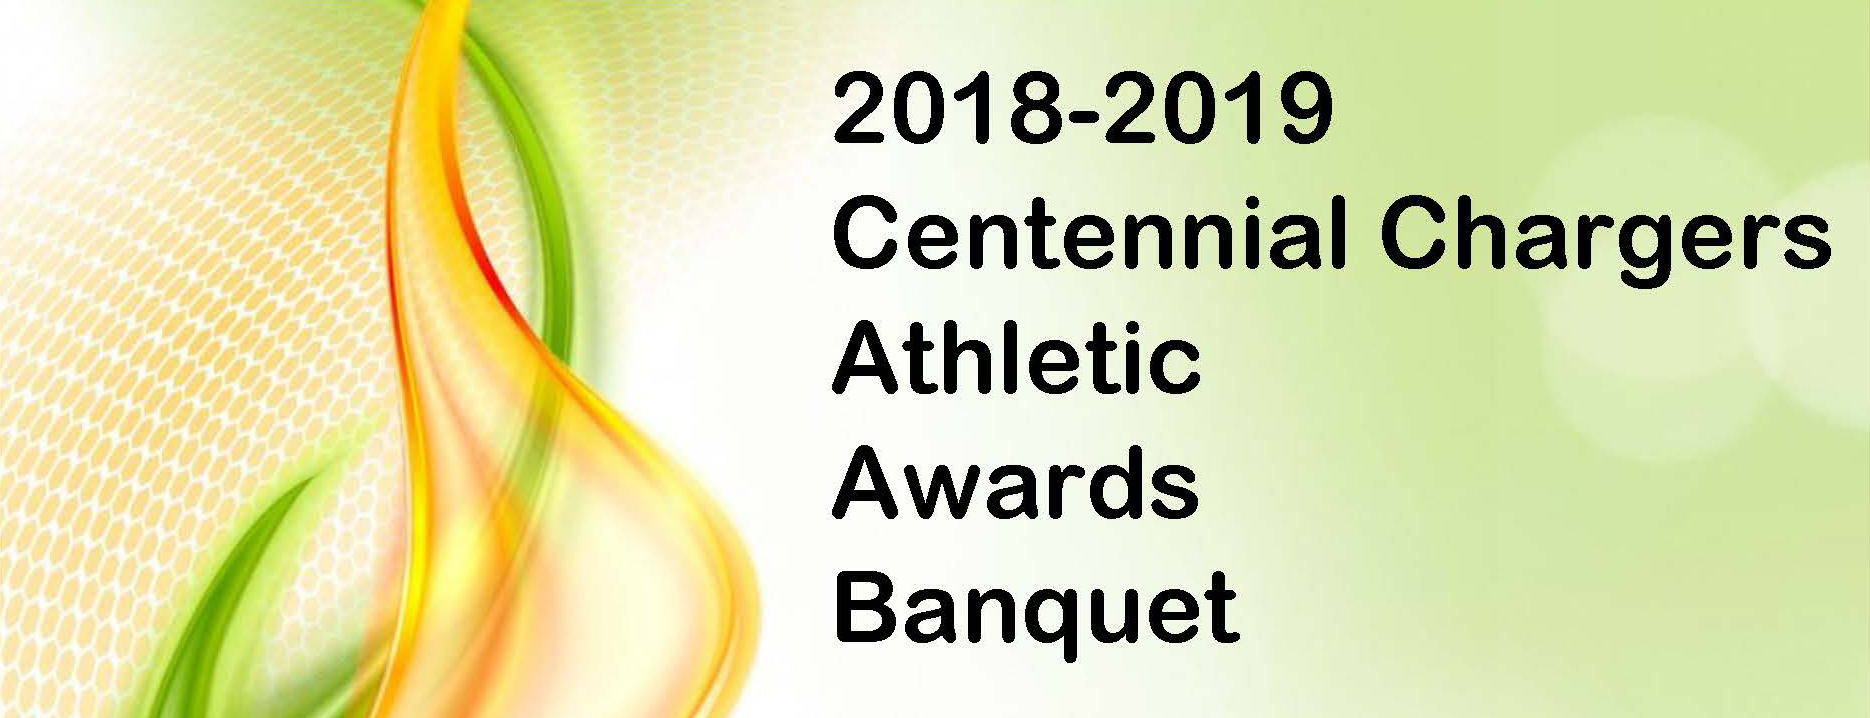 Athletic Awards Banner